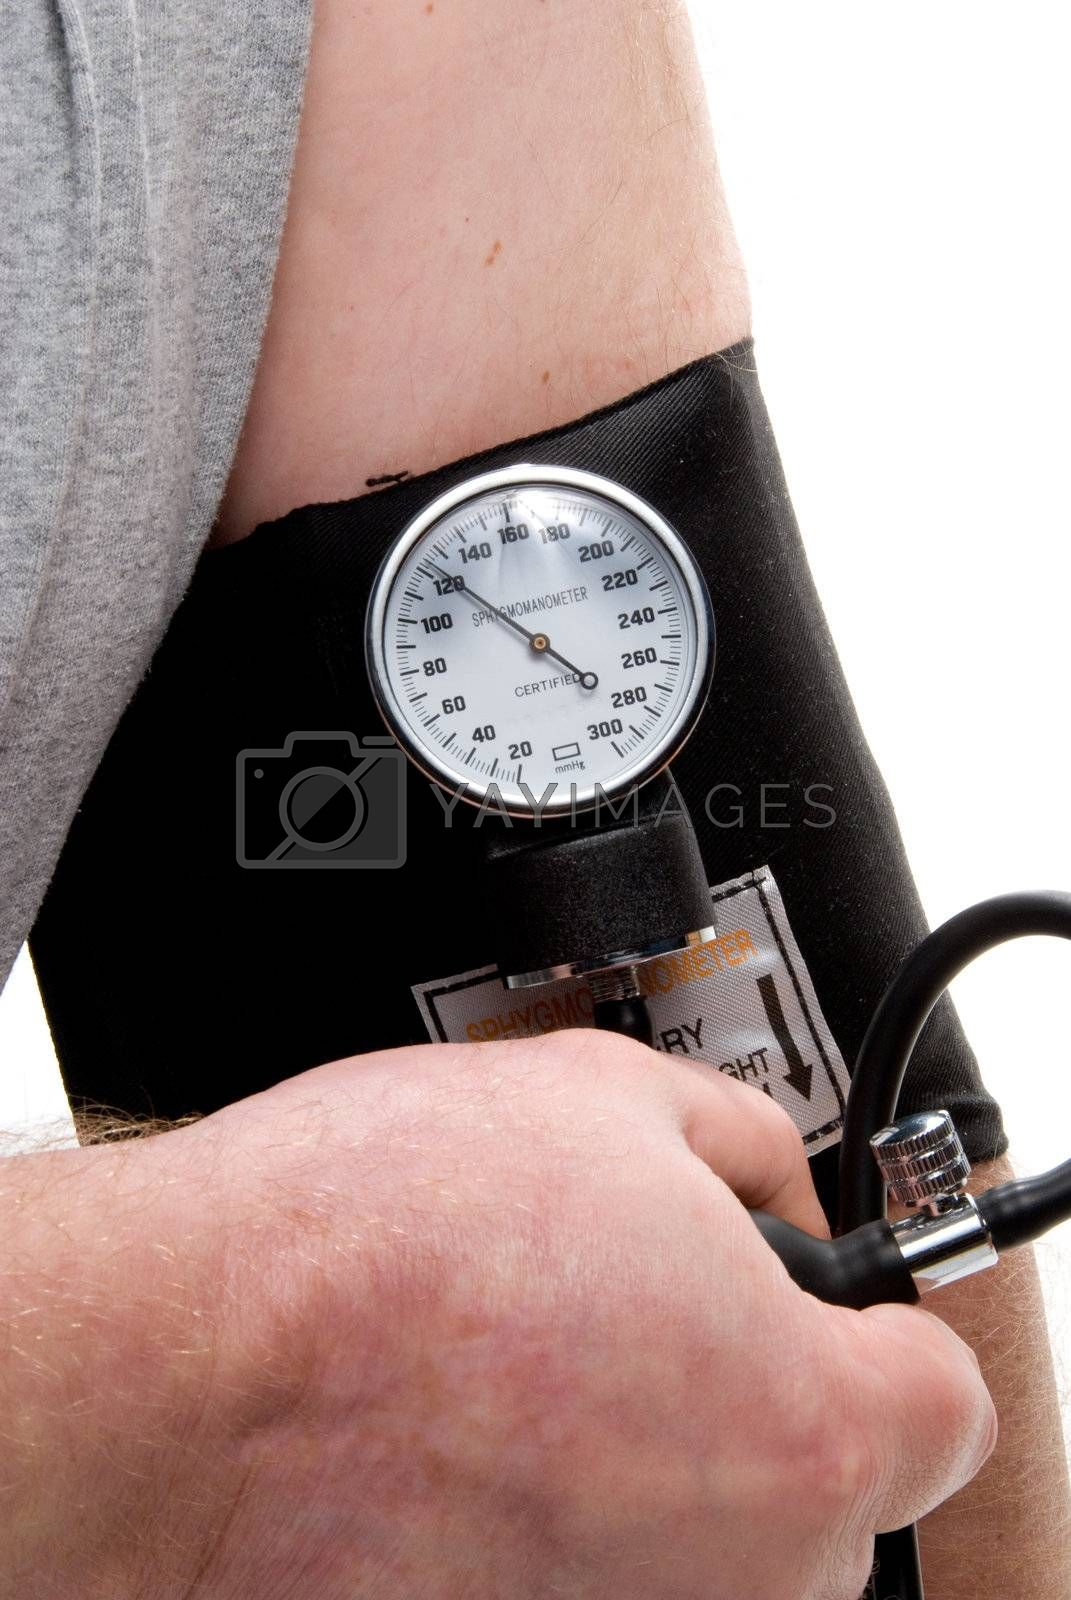 A professional blood pressure tool known as a Sphygmomanometer.